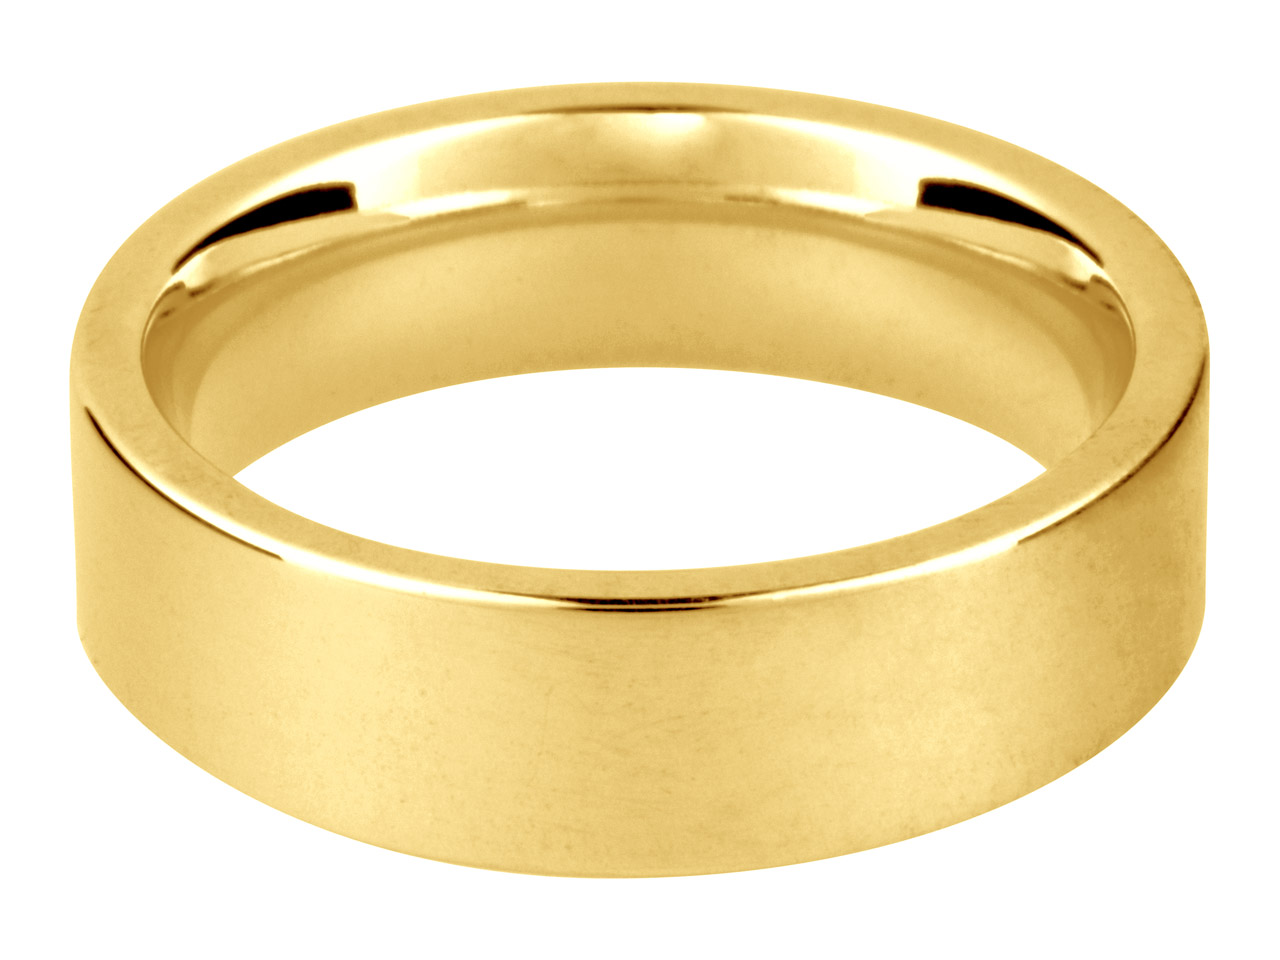 18ct Yellow Easy Fit Wedding Ring  4.0mm K 6.5gms Heavy Weight        Hallmarked Wall Thickness 1.92mm